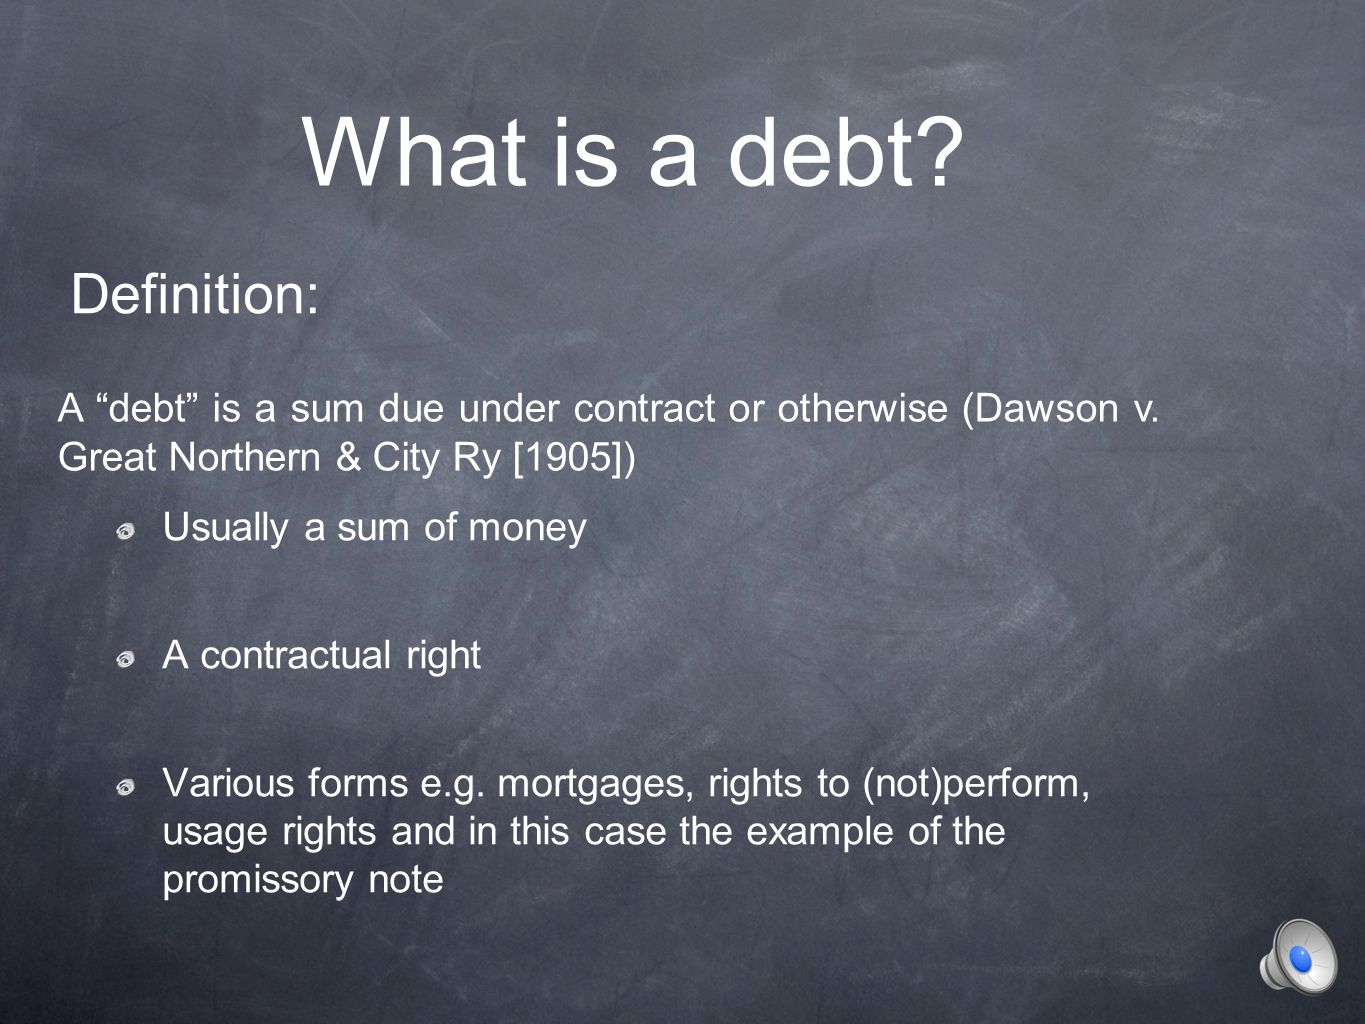 Definition: A debt is a sum due under contract or otherwise (Dawson v.